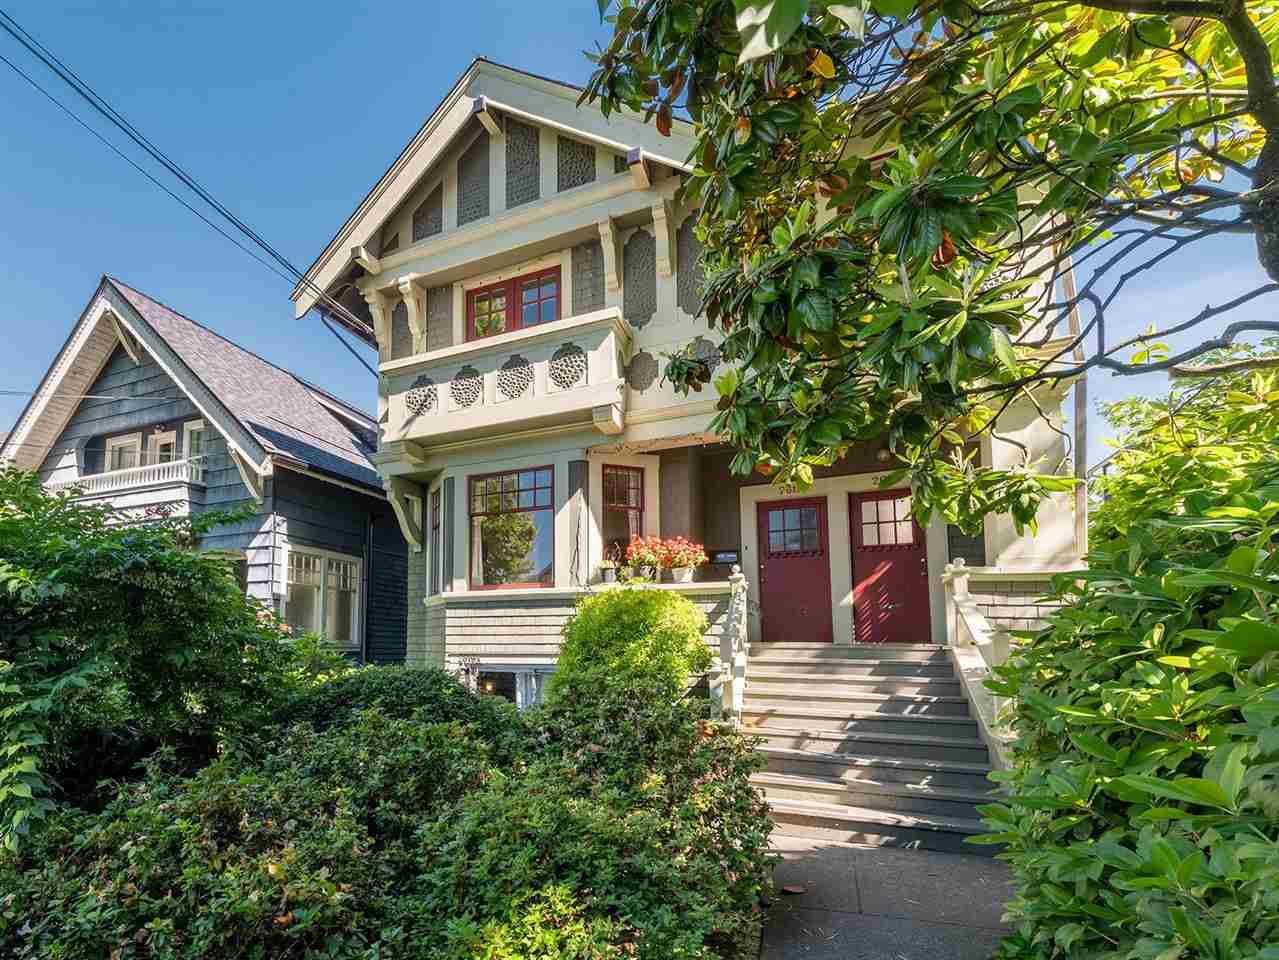 Main Photo: 2615 W 2ND Avenue in Vancouver: Kitsilano House for sale (Vancouver West)  : MLS®# R2590943